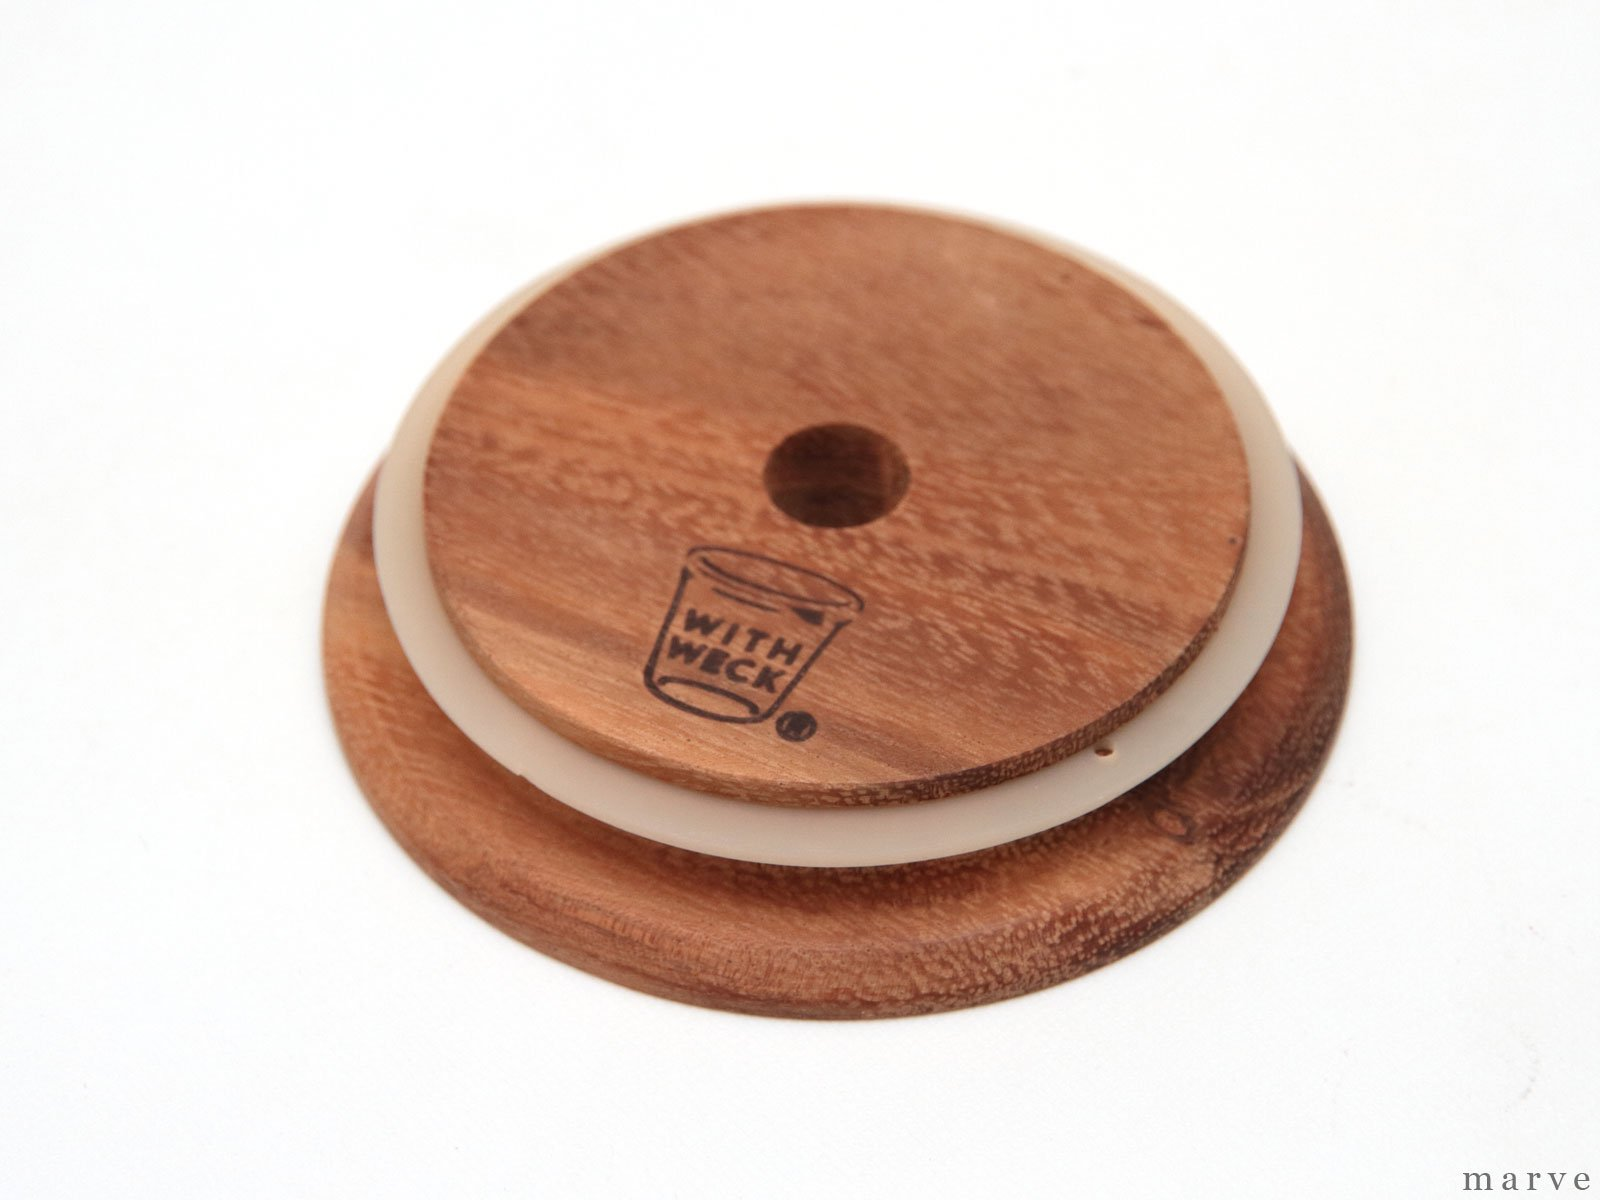 WITH WECK Wooden Lid with Hole Φ90 ウィズウェック 穴あきウッド蓋90φ